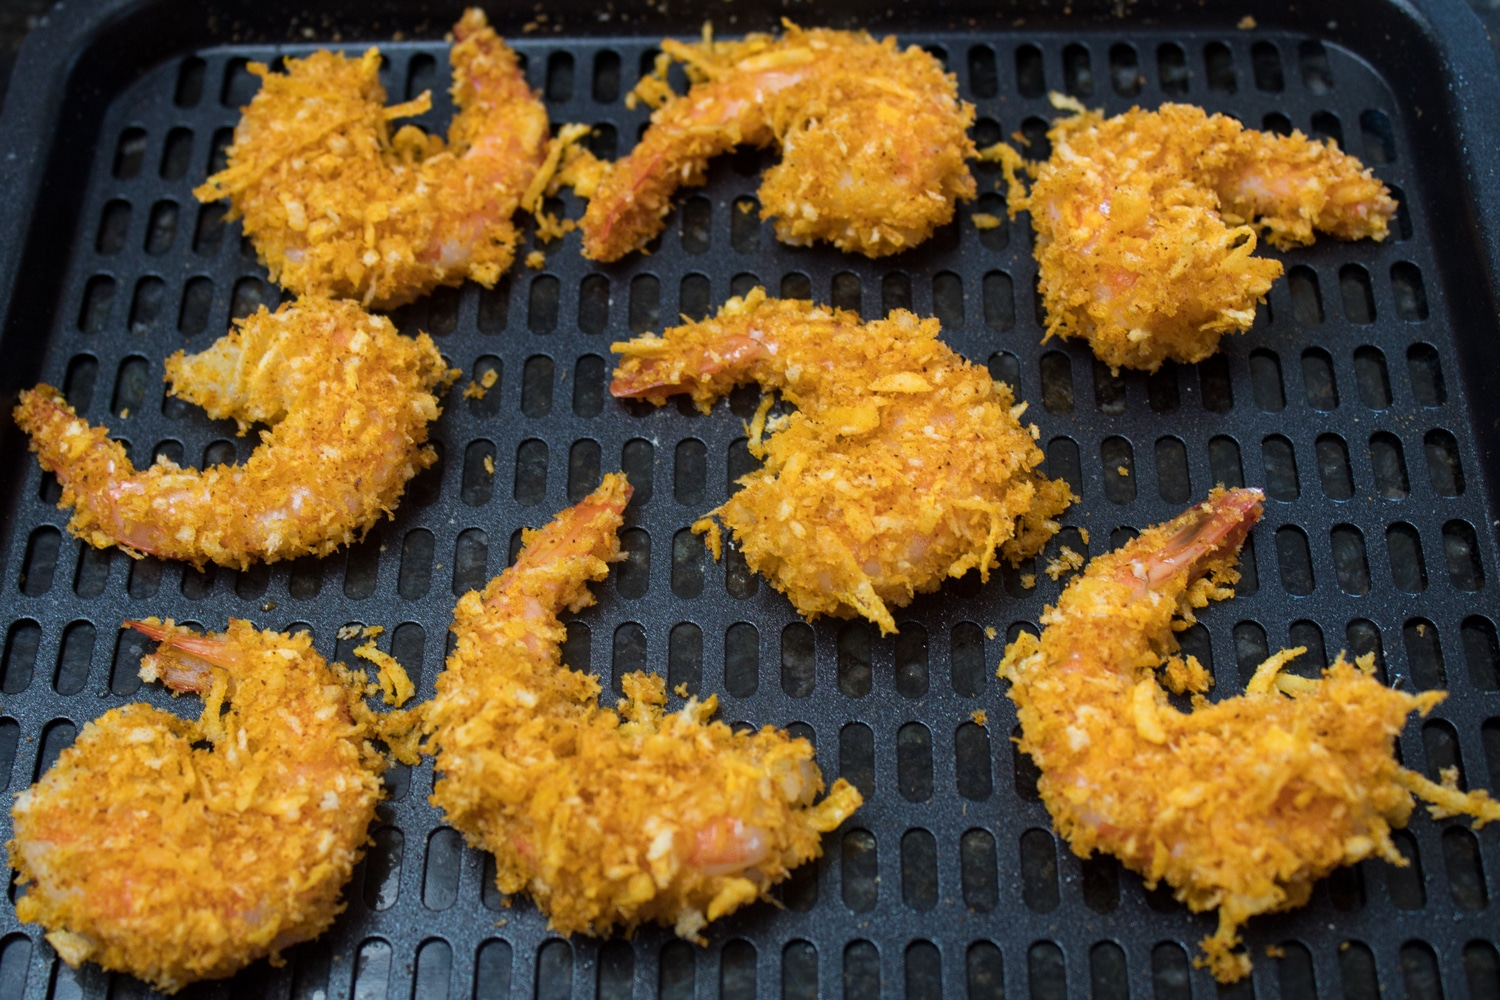 Coconut breading coated shrimp on the air fryer rack ready to go into the preheated instant pot vortex plus air fryer model.